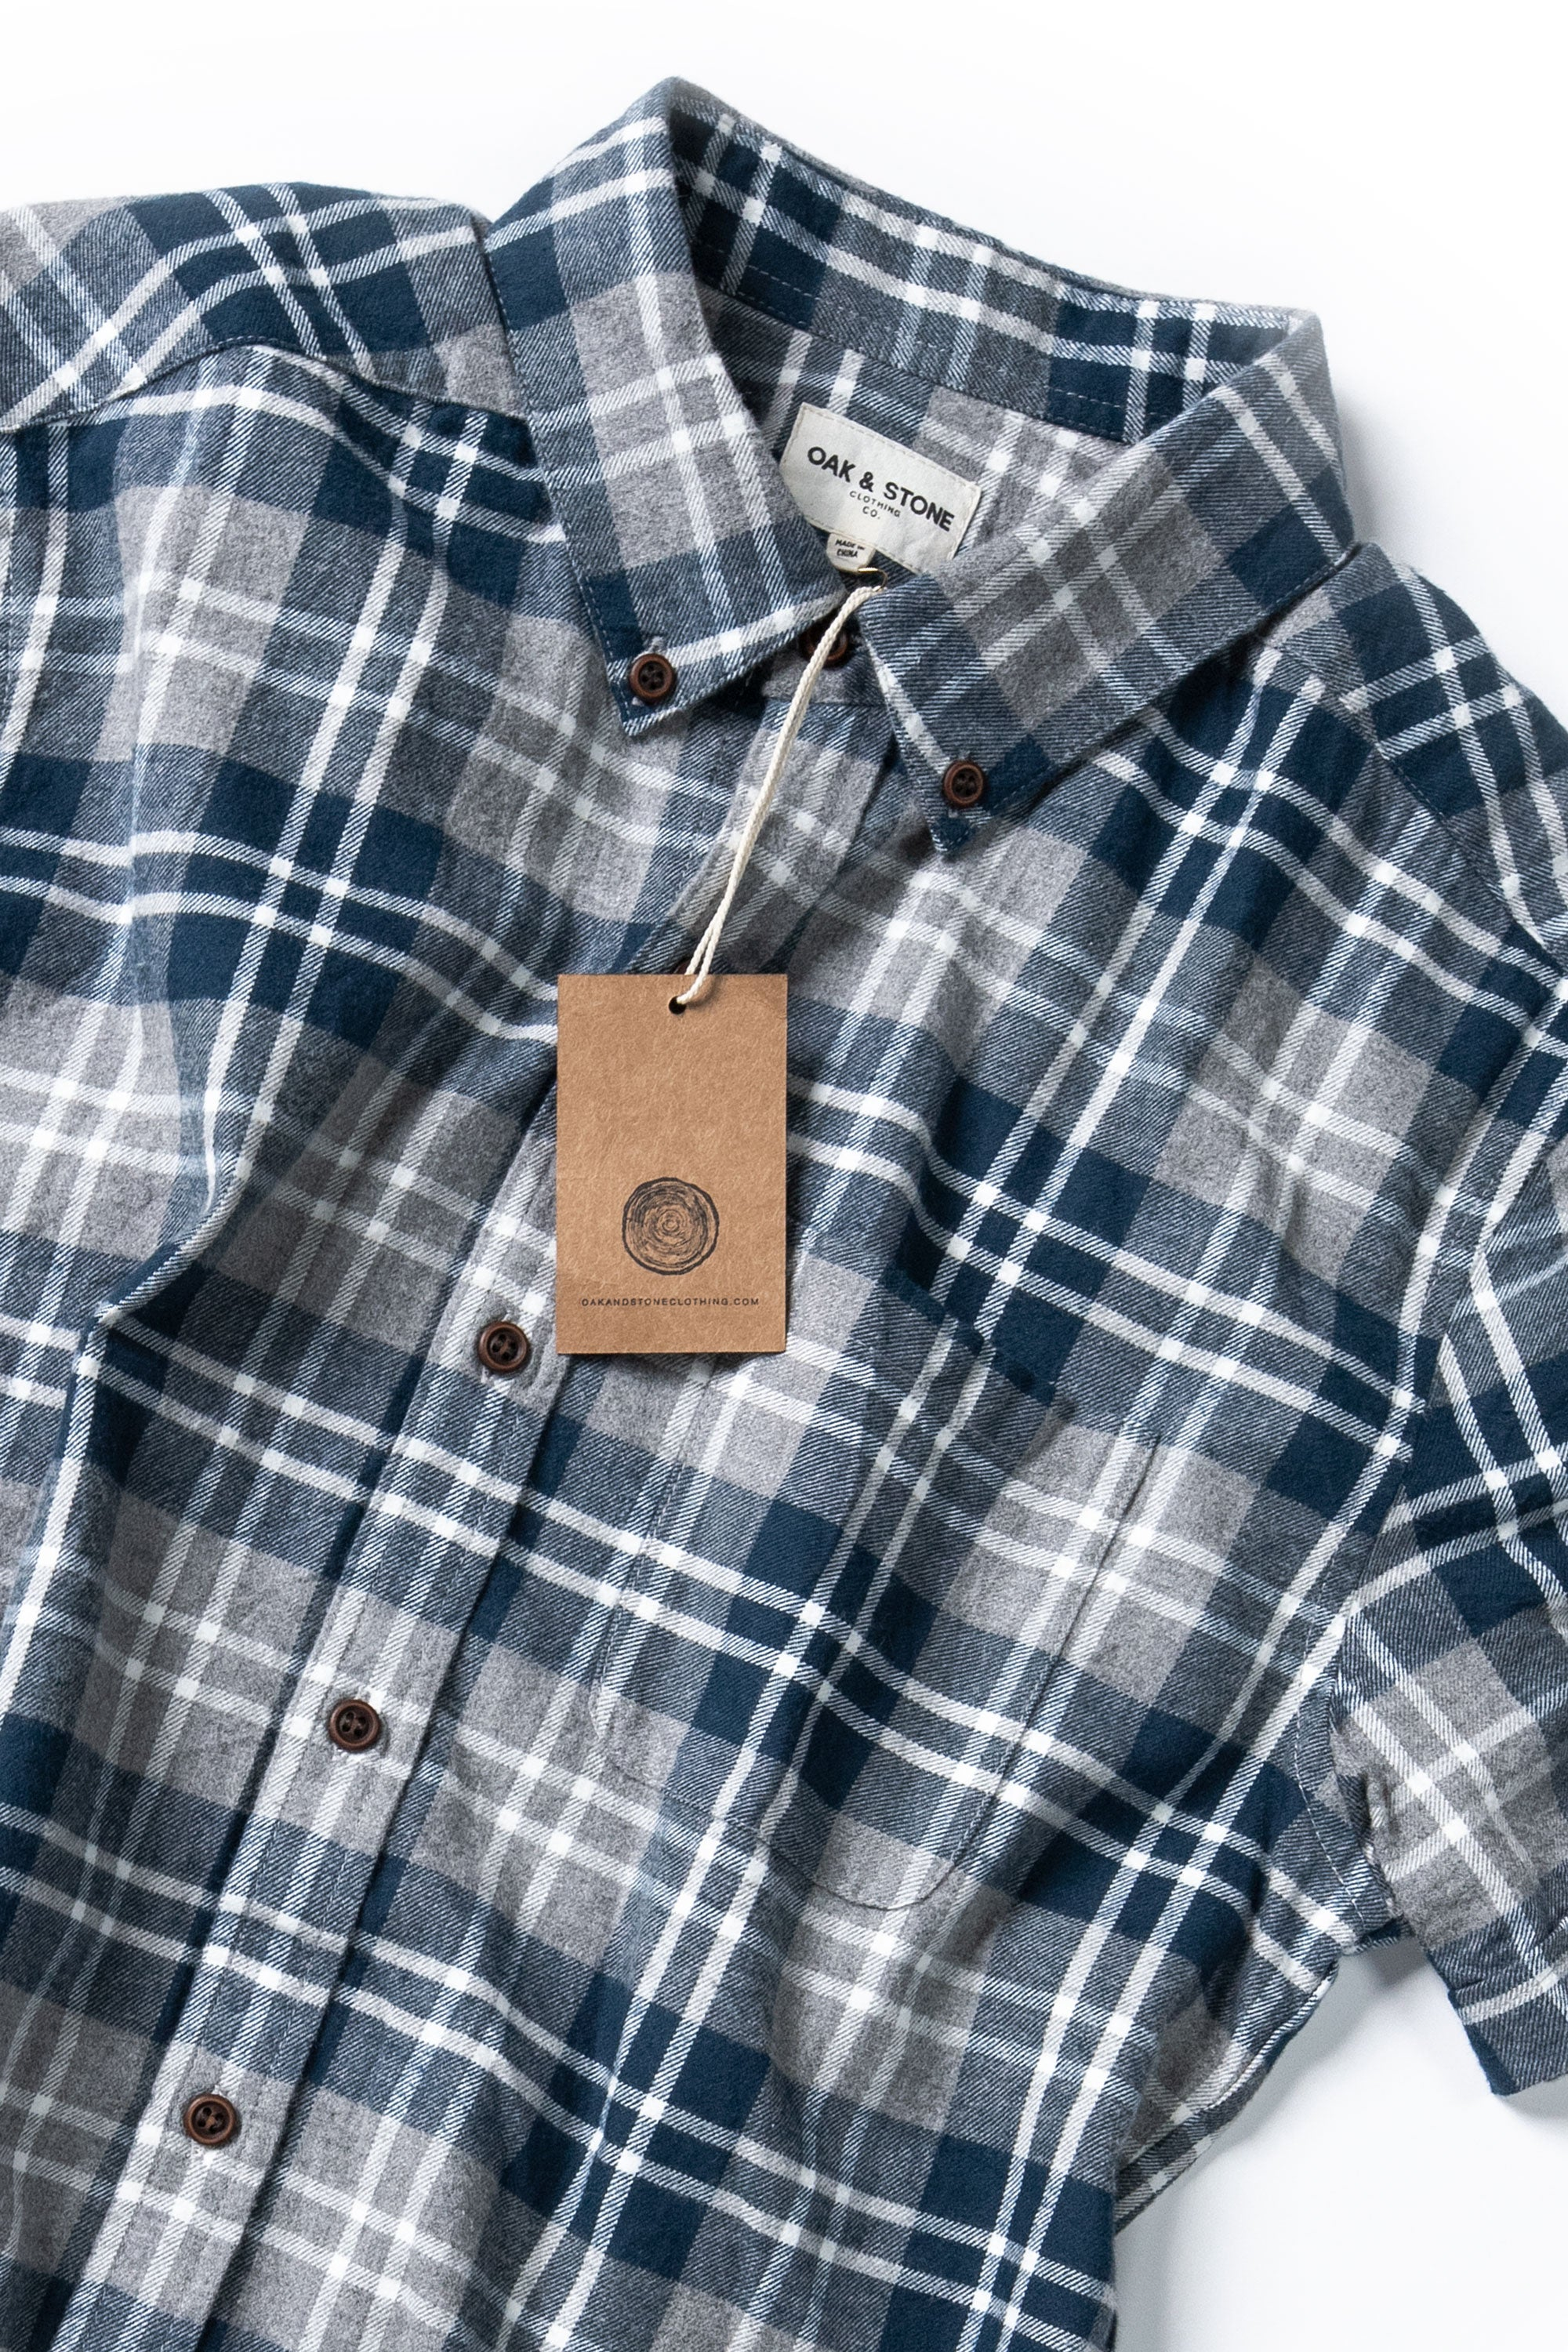 The Essential S/S - Blue - Oak & Stone Clothing Co.